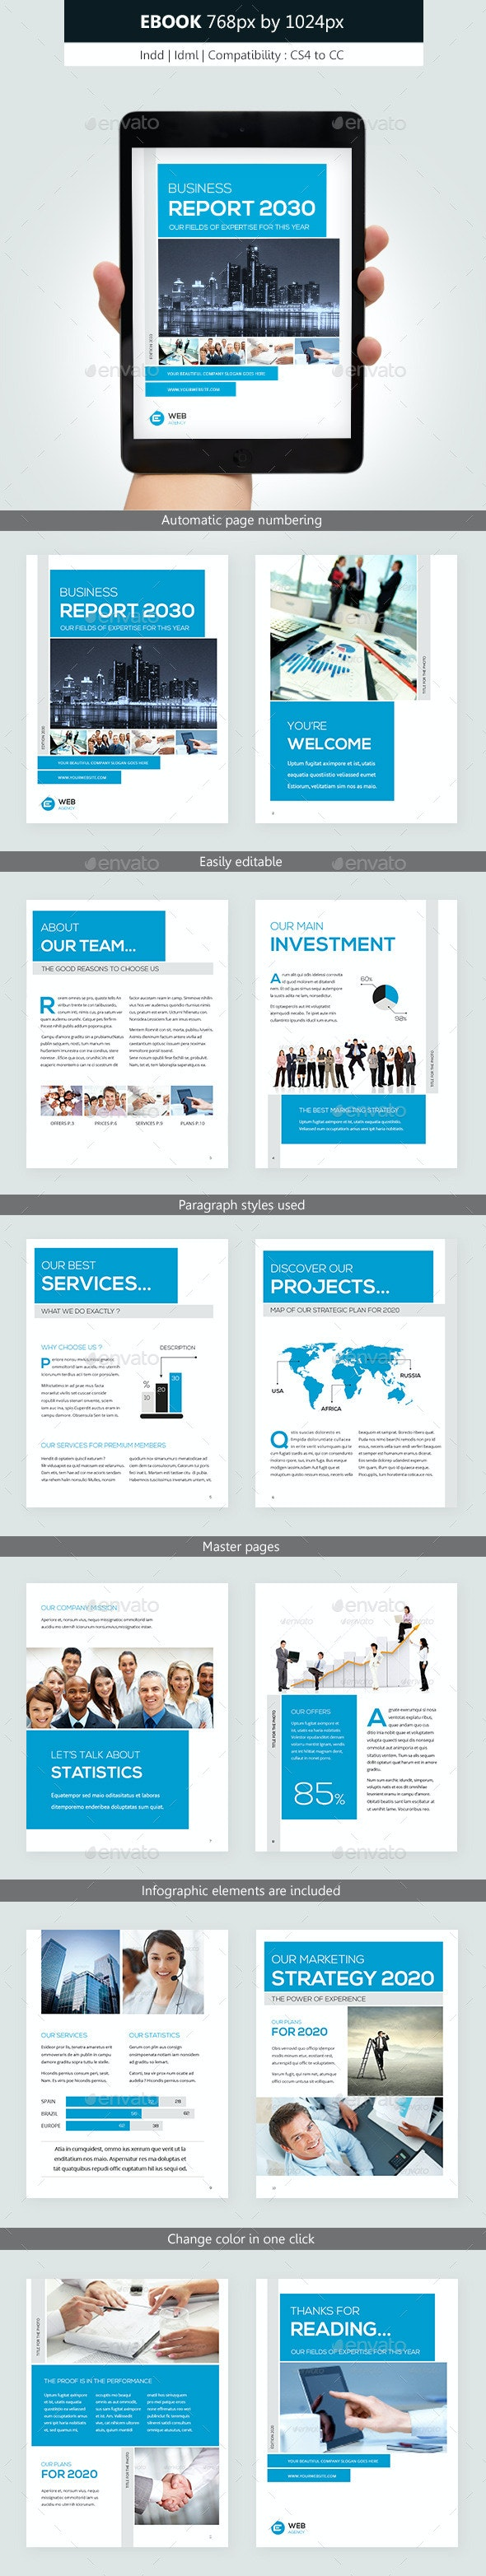 Corporate Ebook Template Design - Digital Books ePublishing